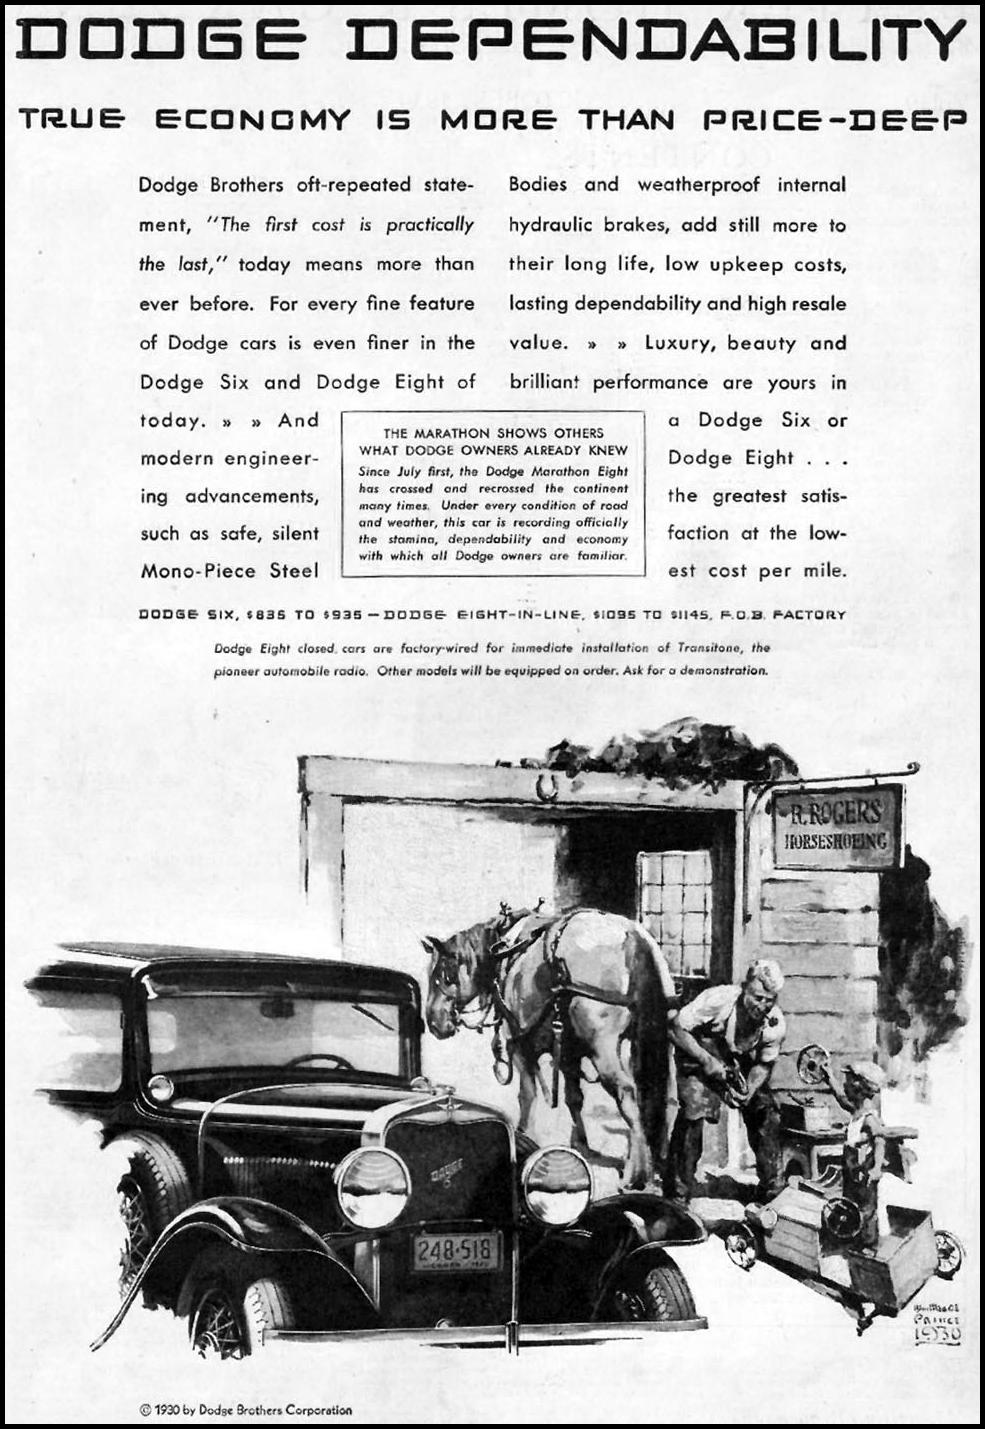 DODGE AUTOMOBILES BETTER HOMES AND GARDENS 10/01/1930 p. 3